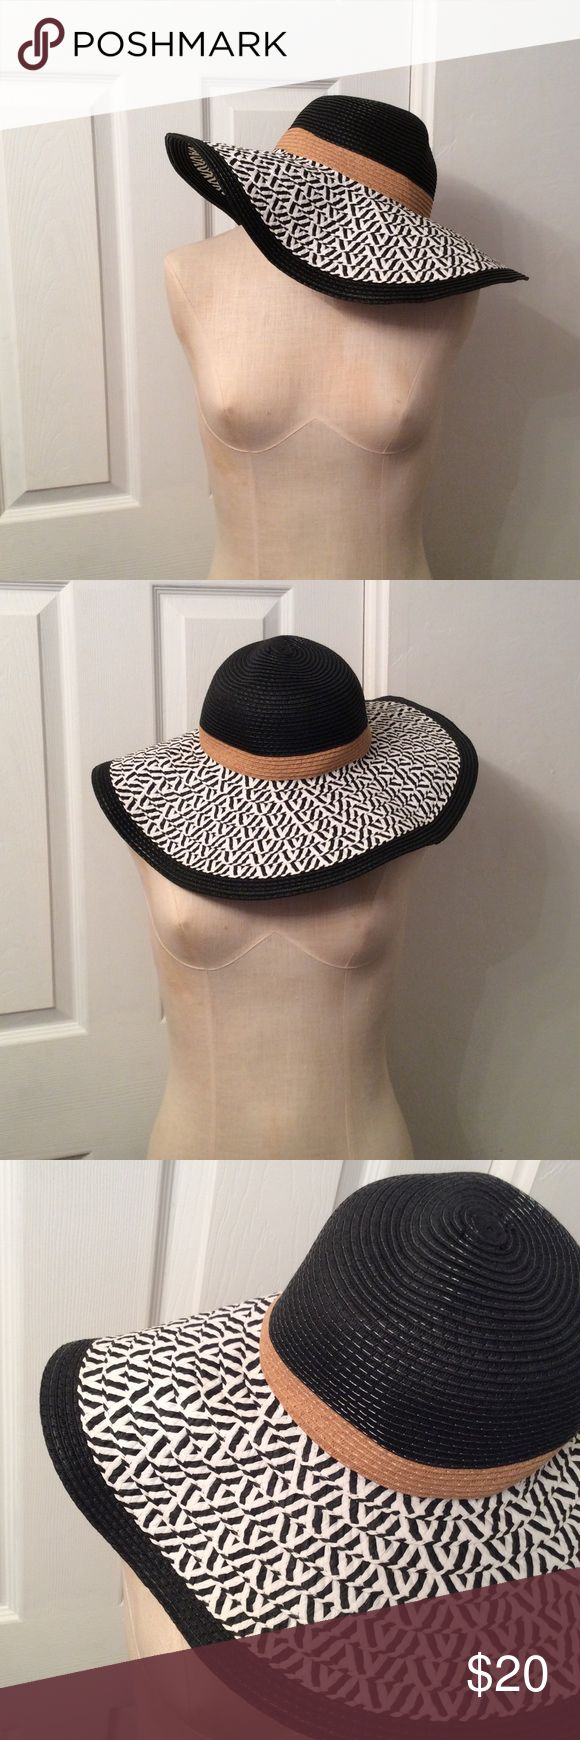 c826d69f4 s u n h a t. Floppy sun hat from Target No flaws! Black, b